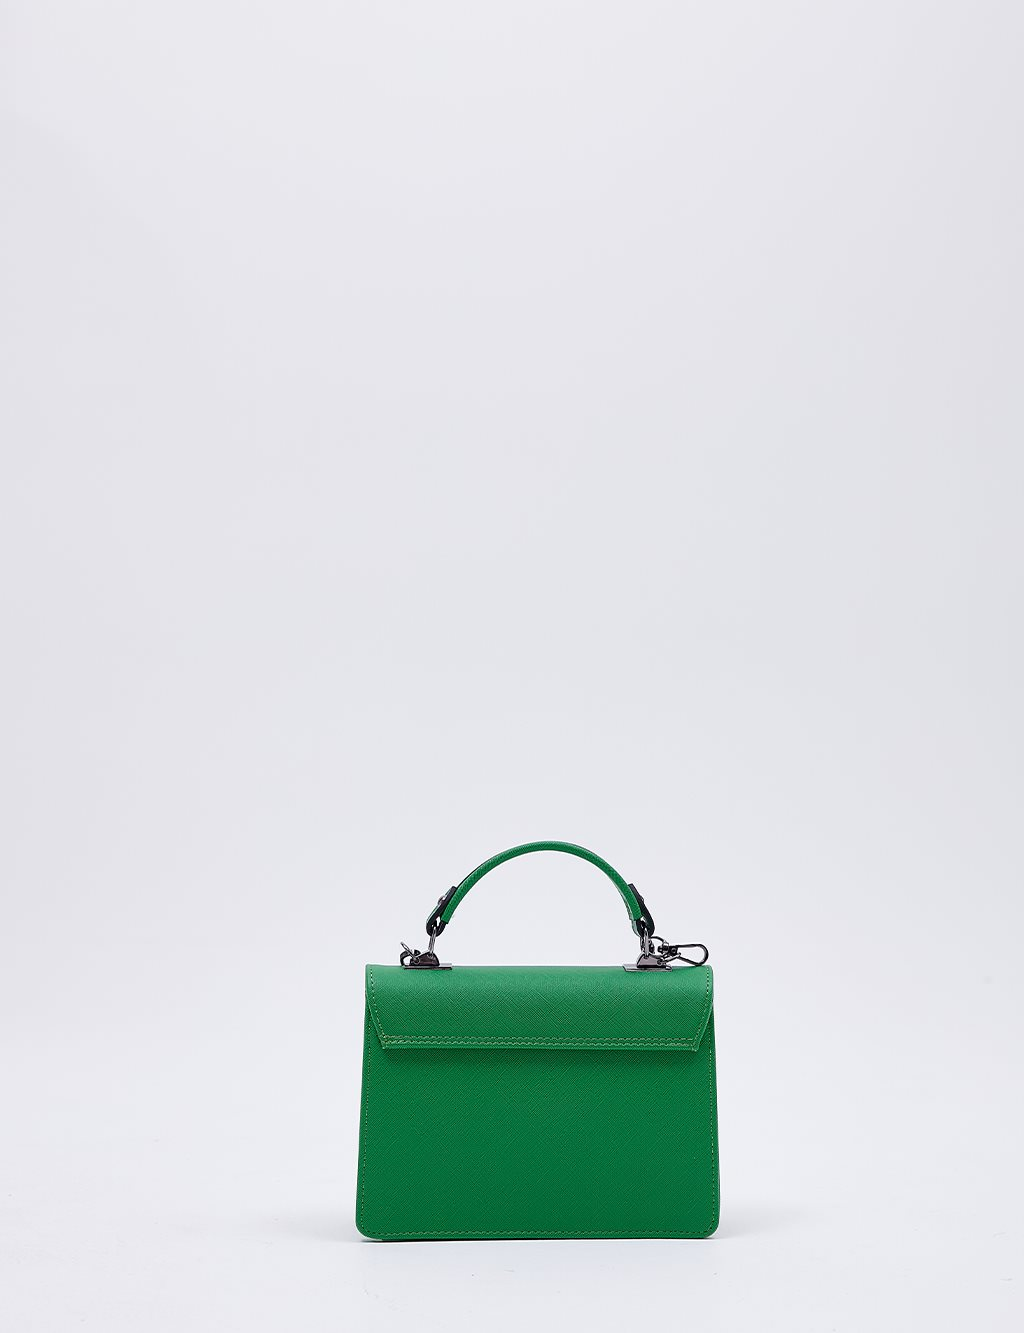 Hand Bag With Chain Strap B20 CNT04 Green